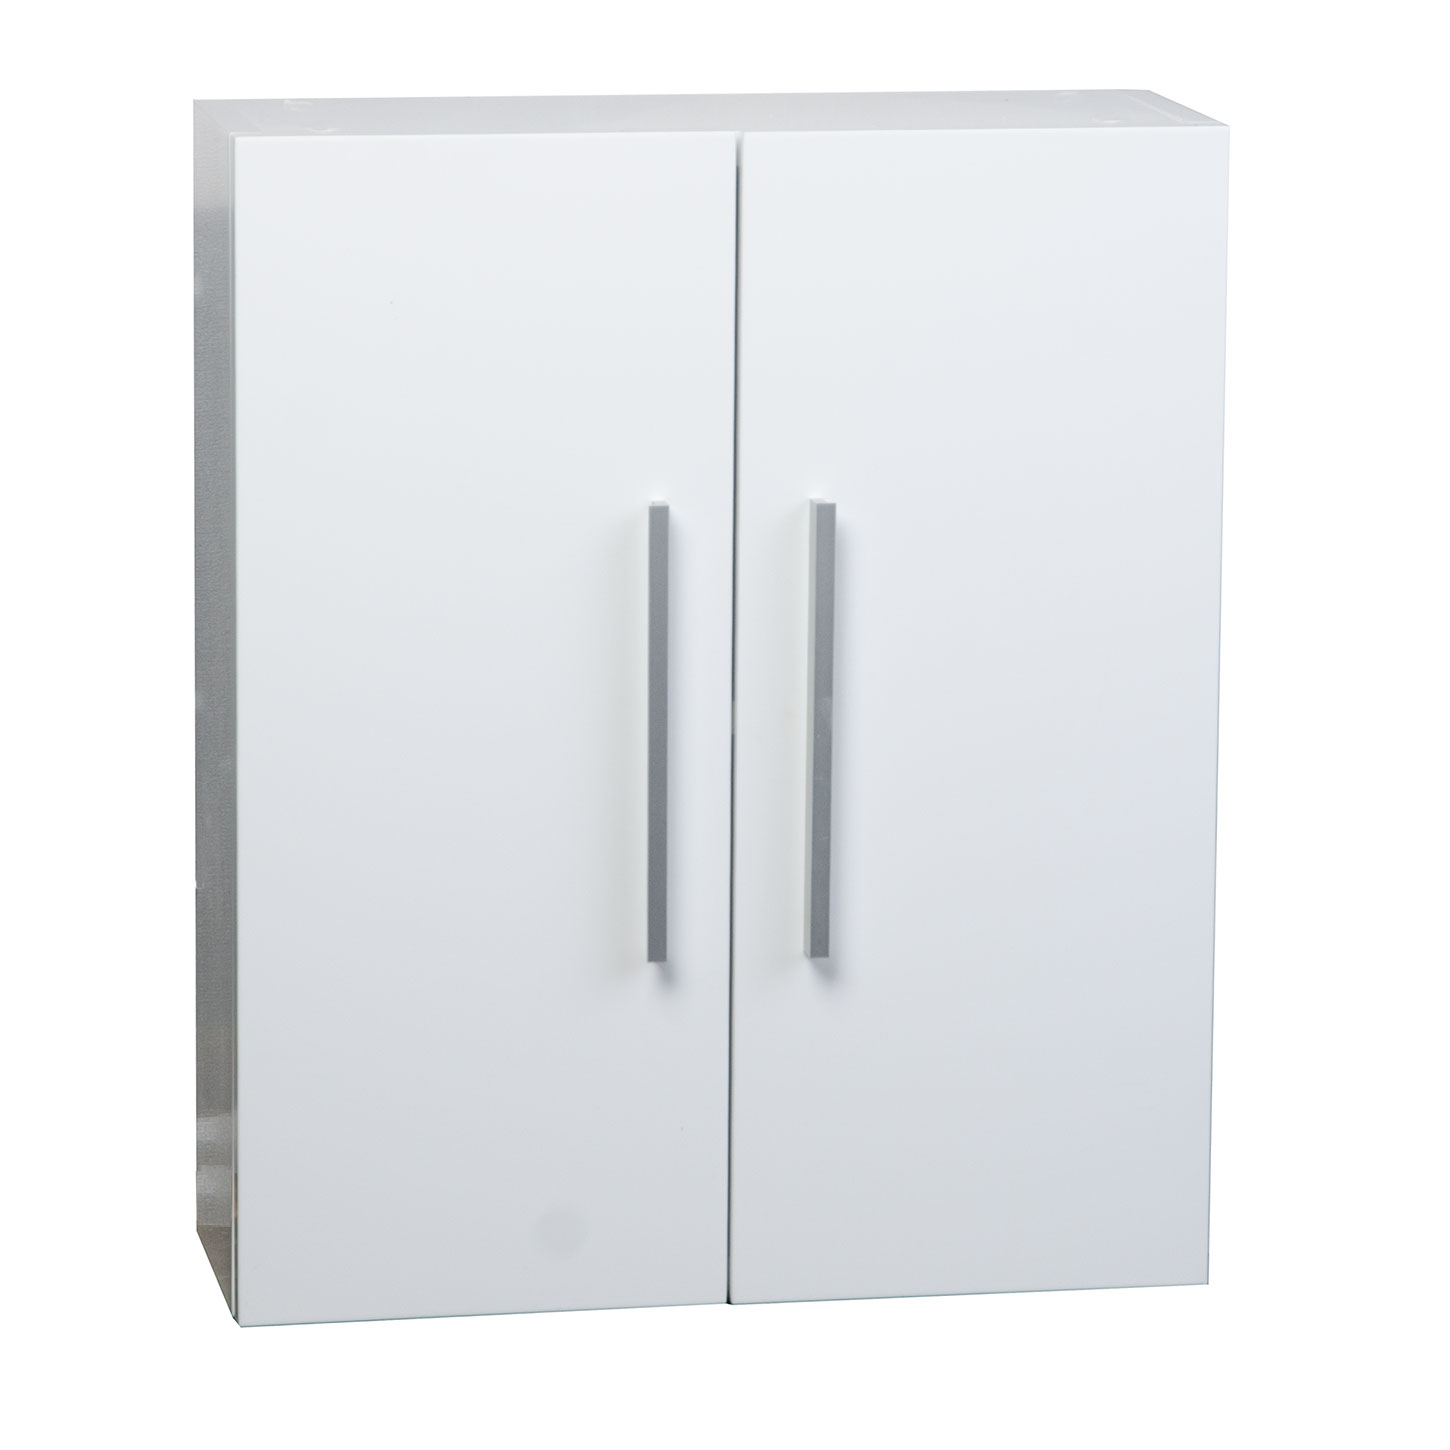 Buy Over-the-toilet Wall Cabinet in Glossy White 20.5 in. W x 24.4 ...